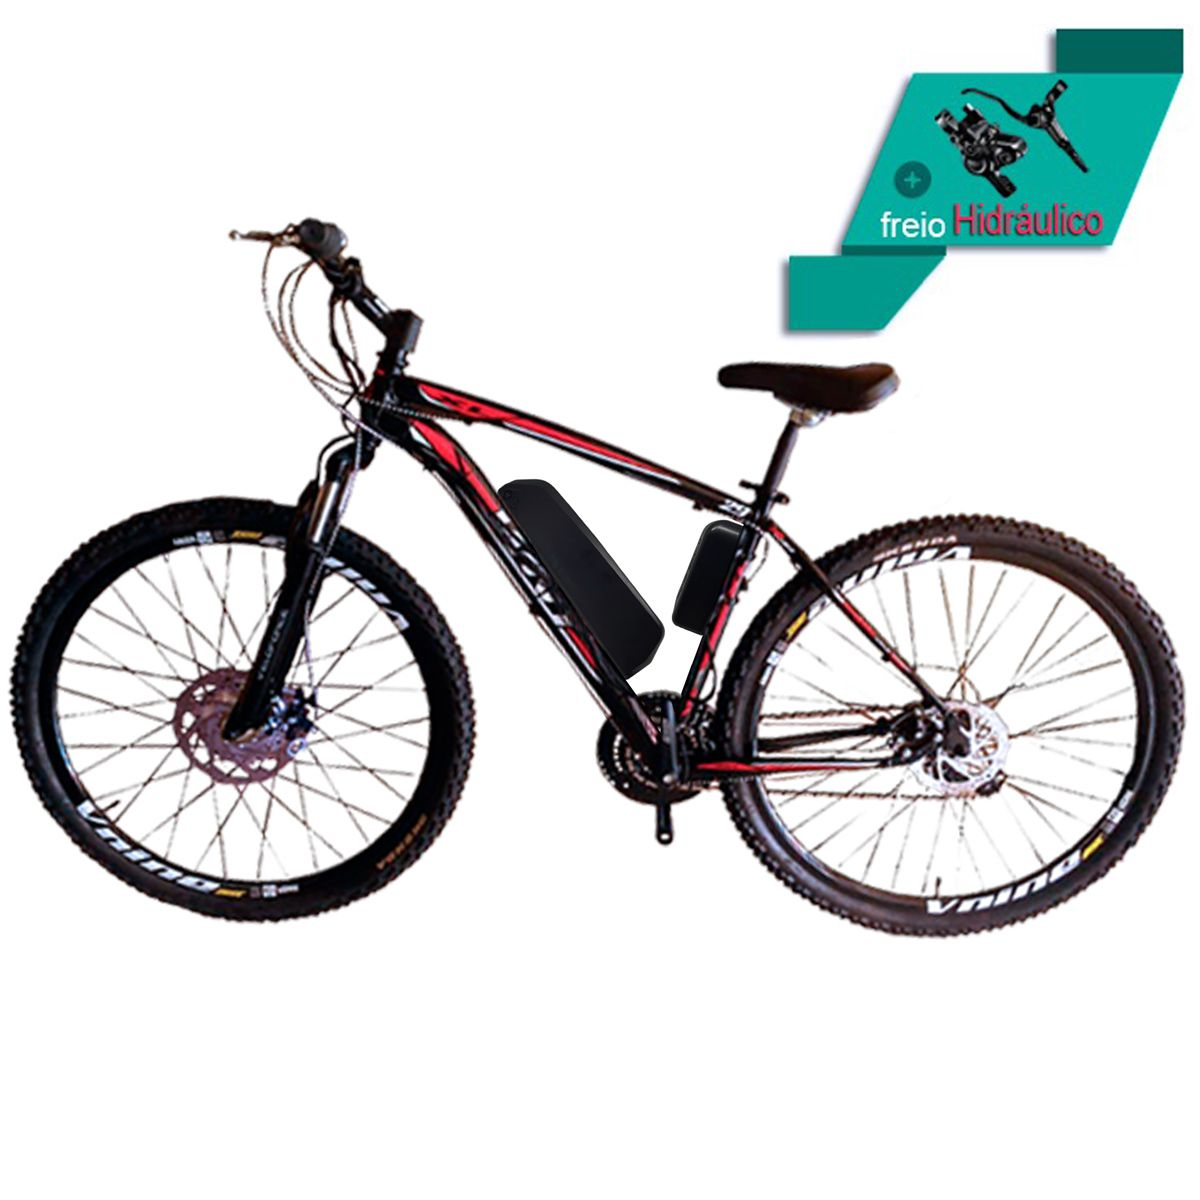 Bike Elétrica Aro 29 AL. BAT. de LITIO Tec-Ultra 500w